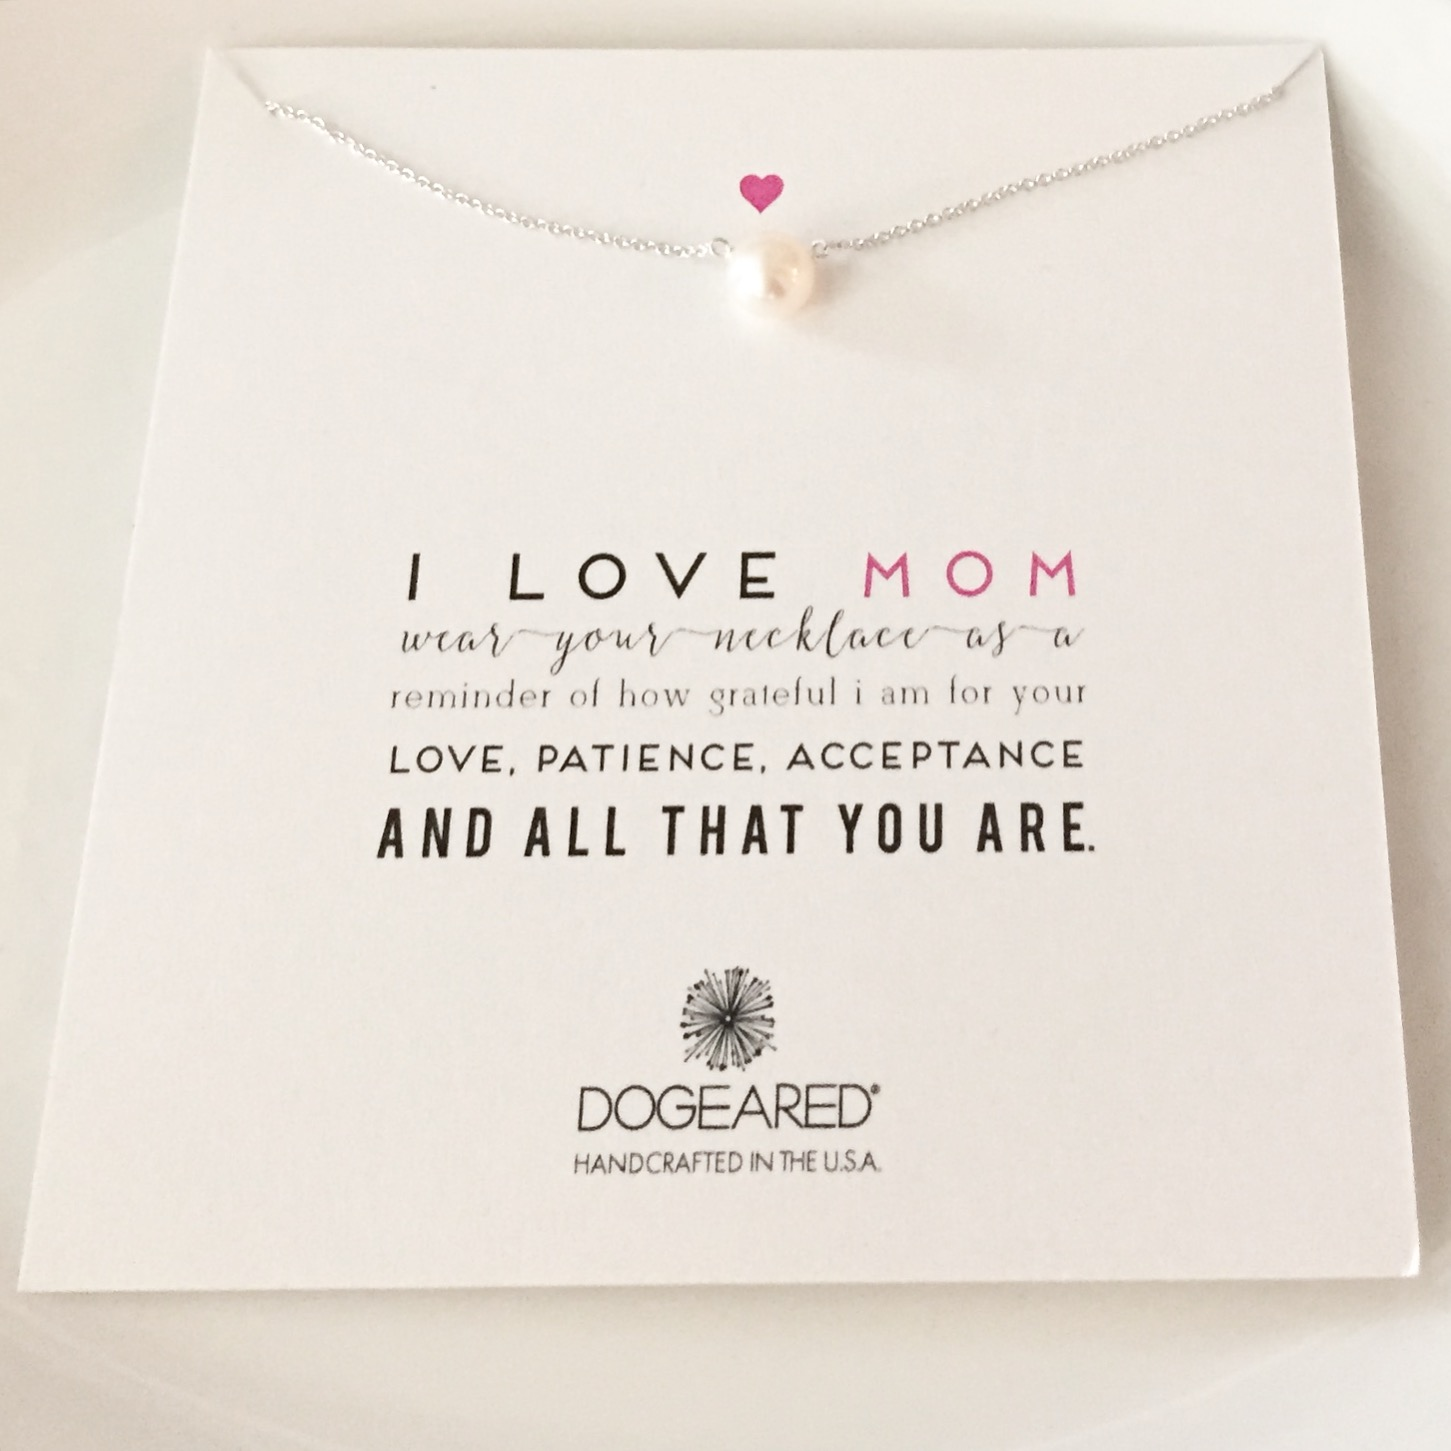 Dogeared Pearl Necklace for Mom